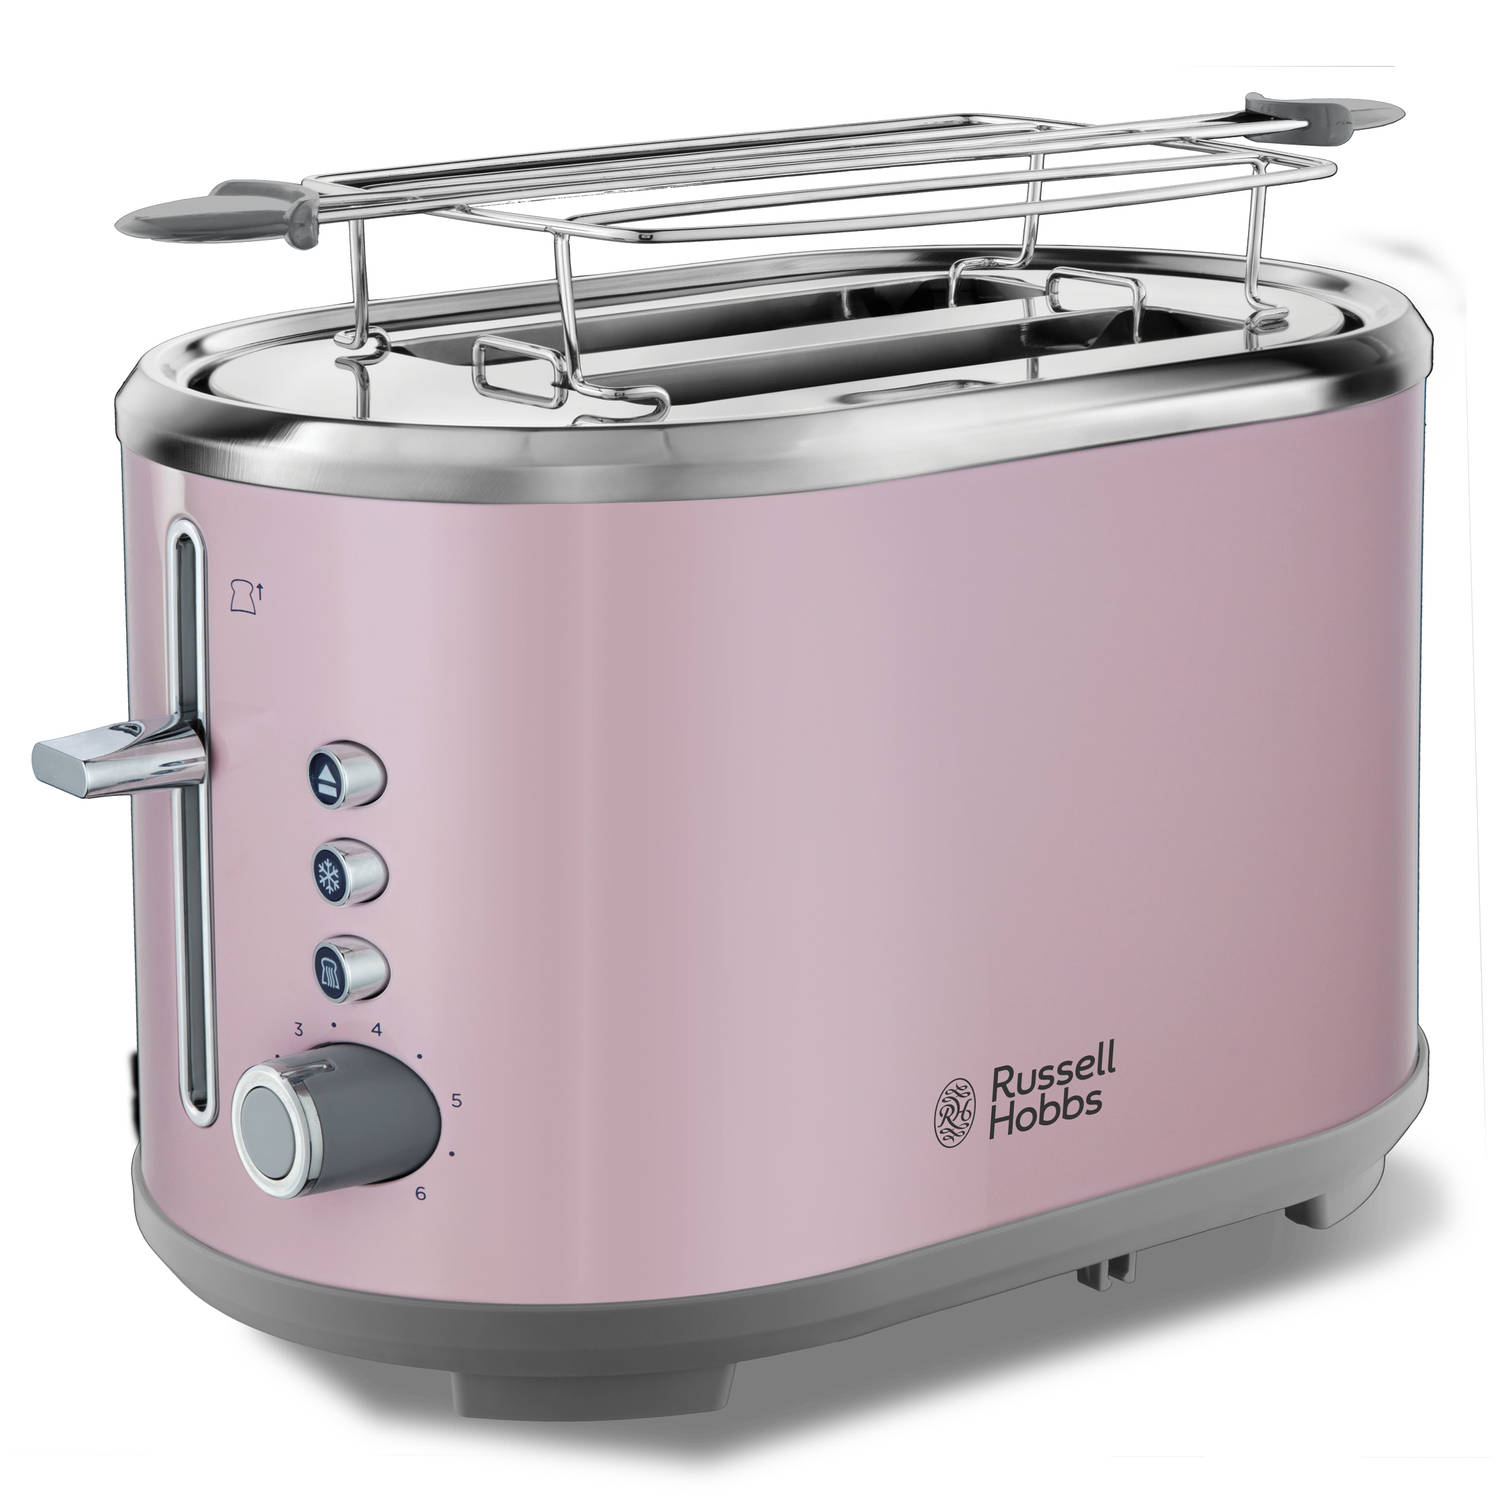 Russell Hobbs broodrooster Bubble Pink 25081-56